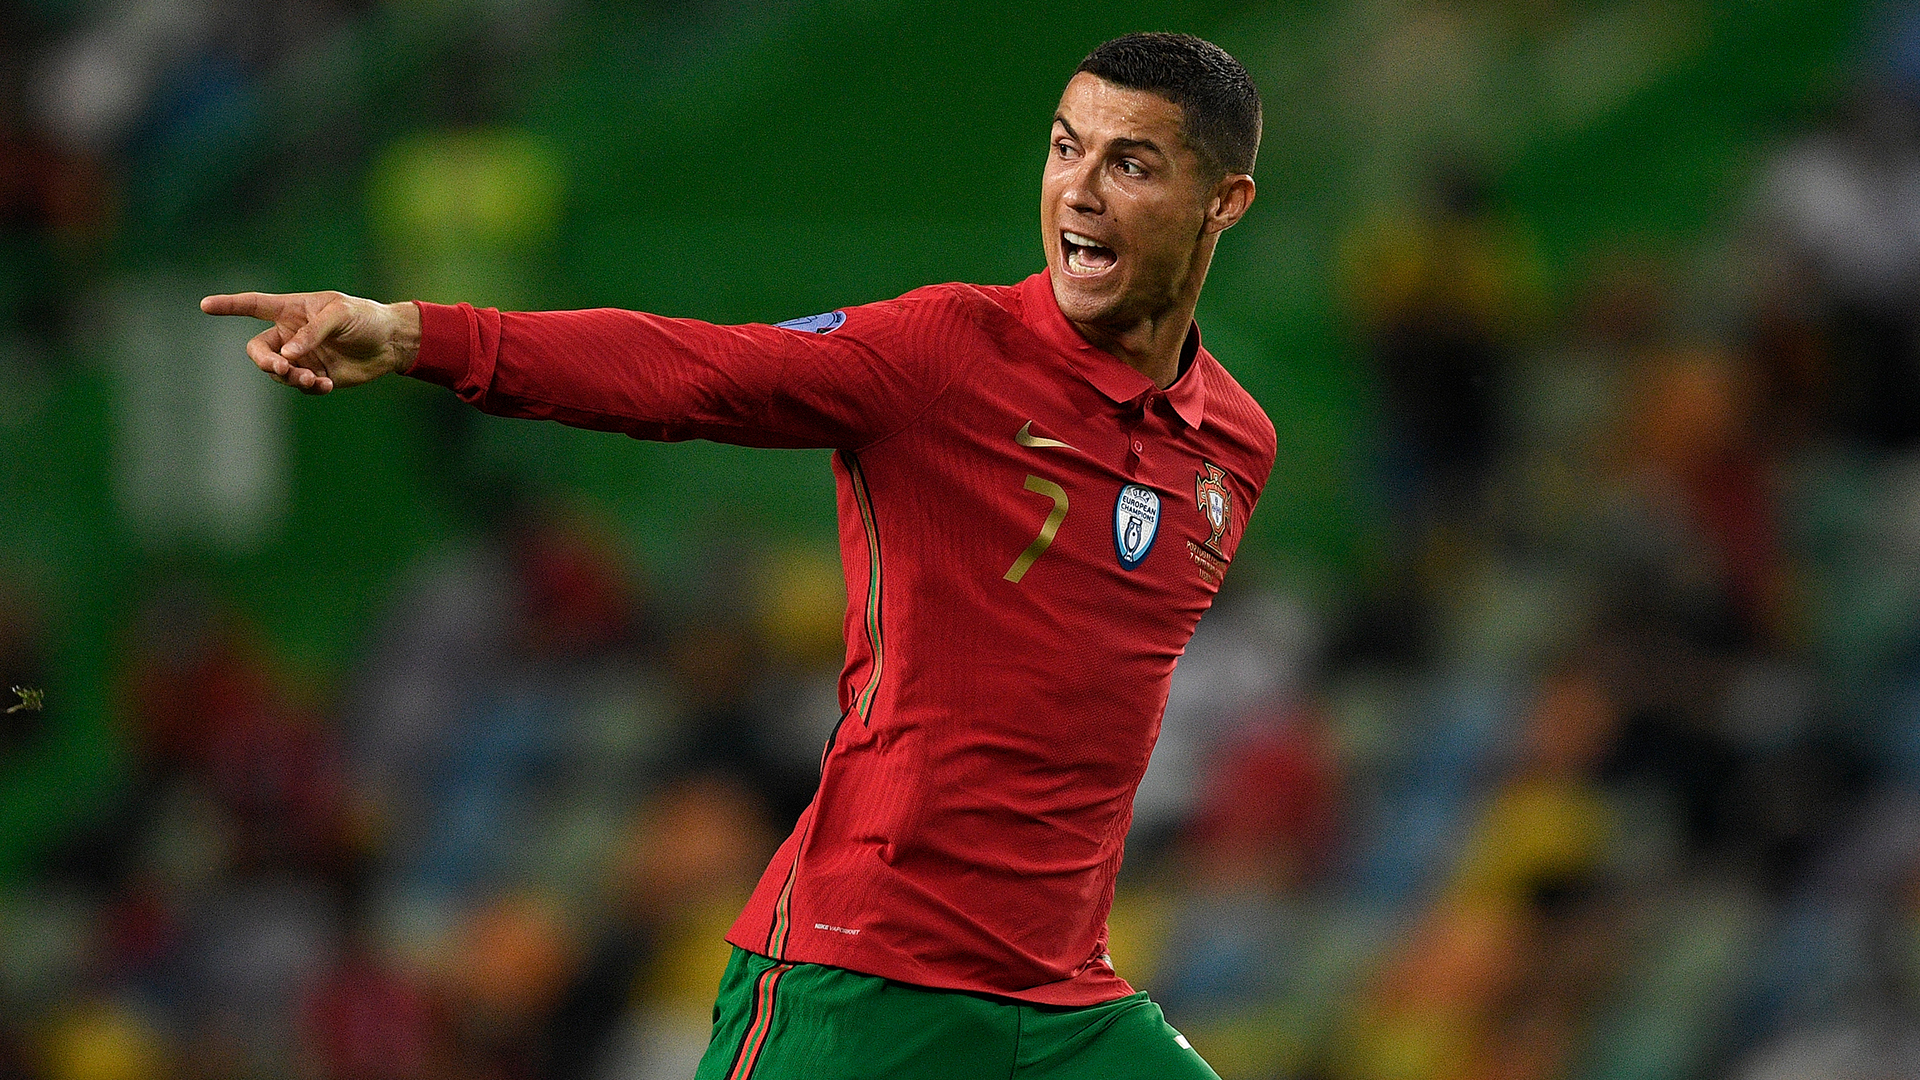 Video: Ronaldo doing well after positive coronavirus test - Portugal coach